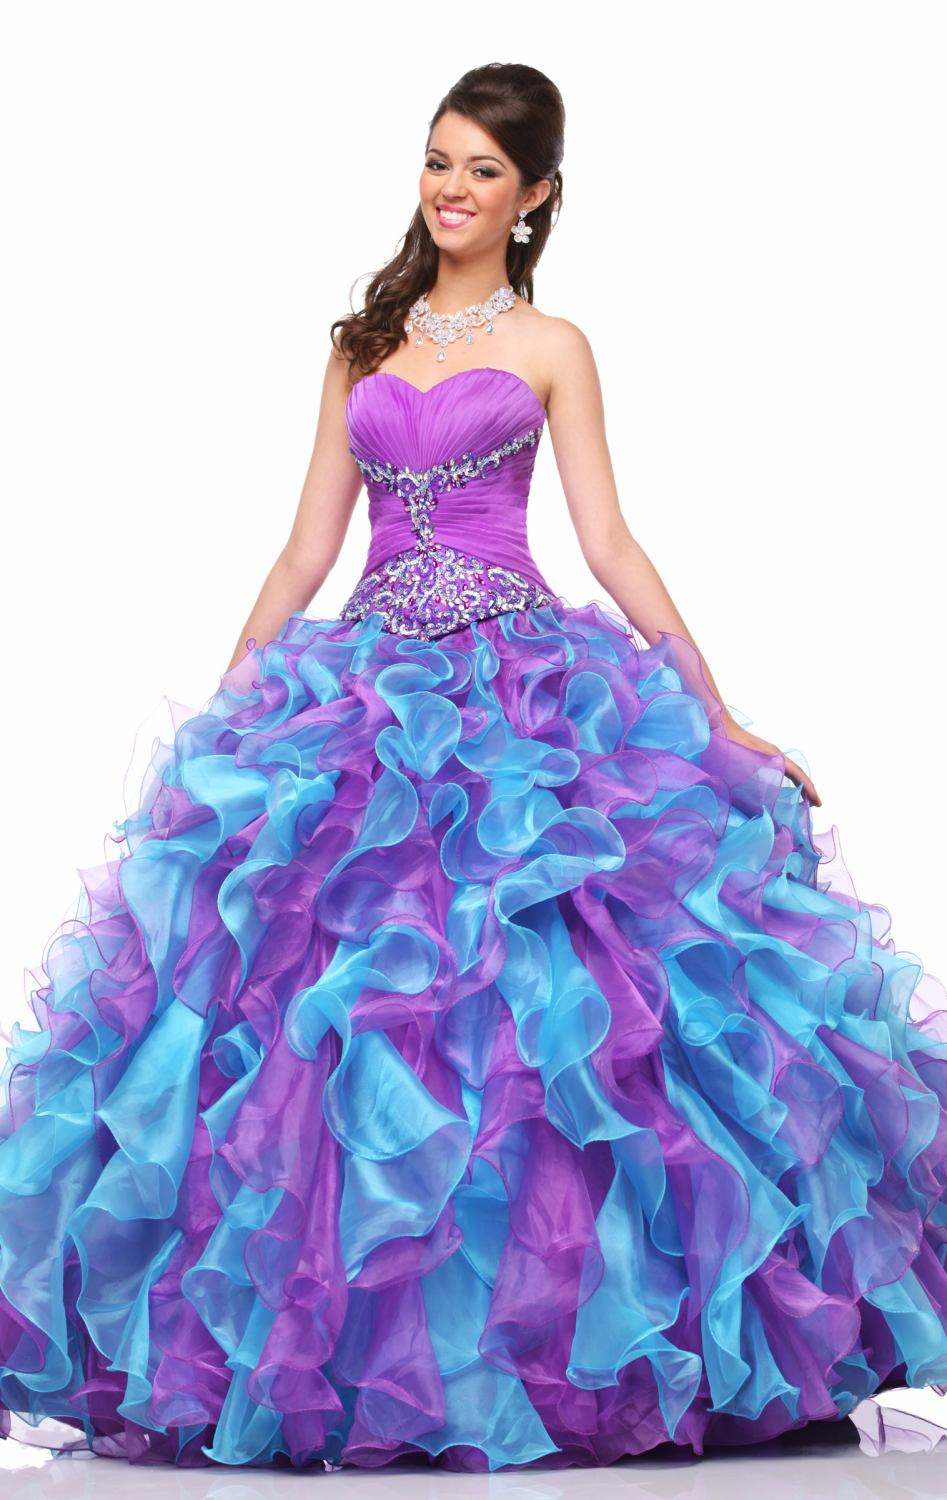 Dresses quinceanera turquoise and purple images